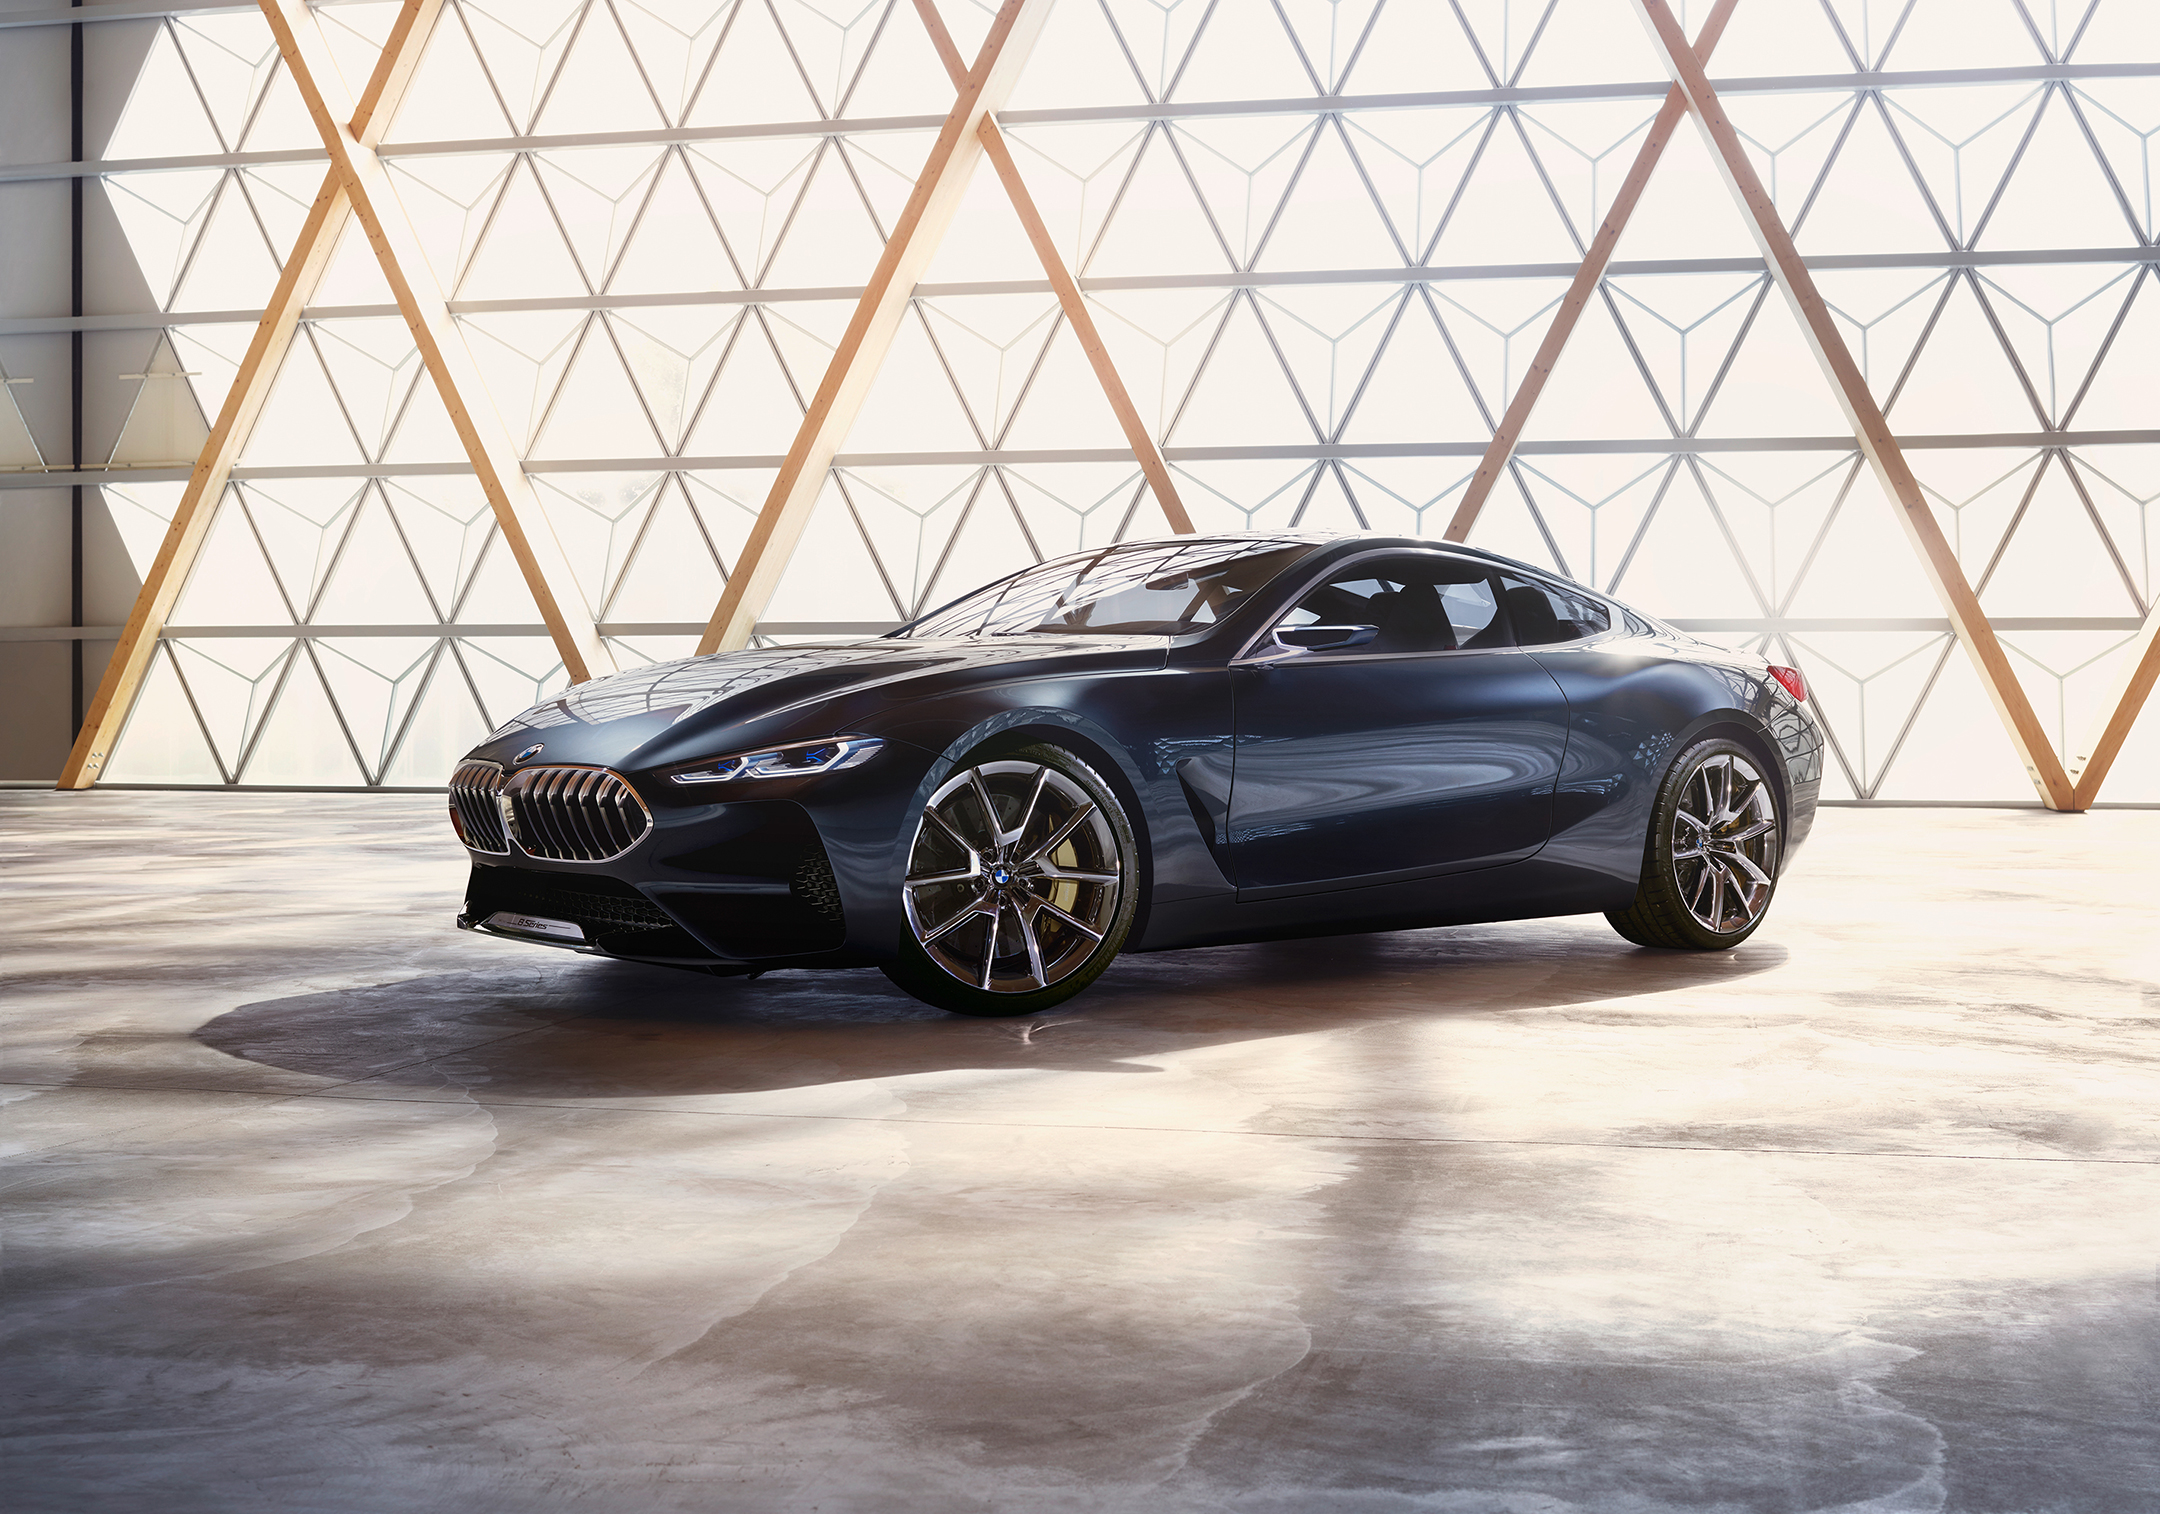 BMW concept 8 series - 2017 - front side-face / profil avant